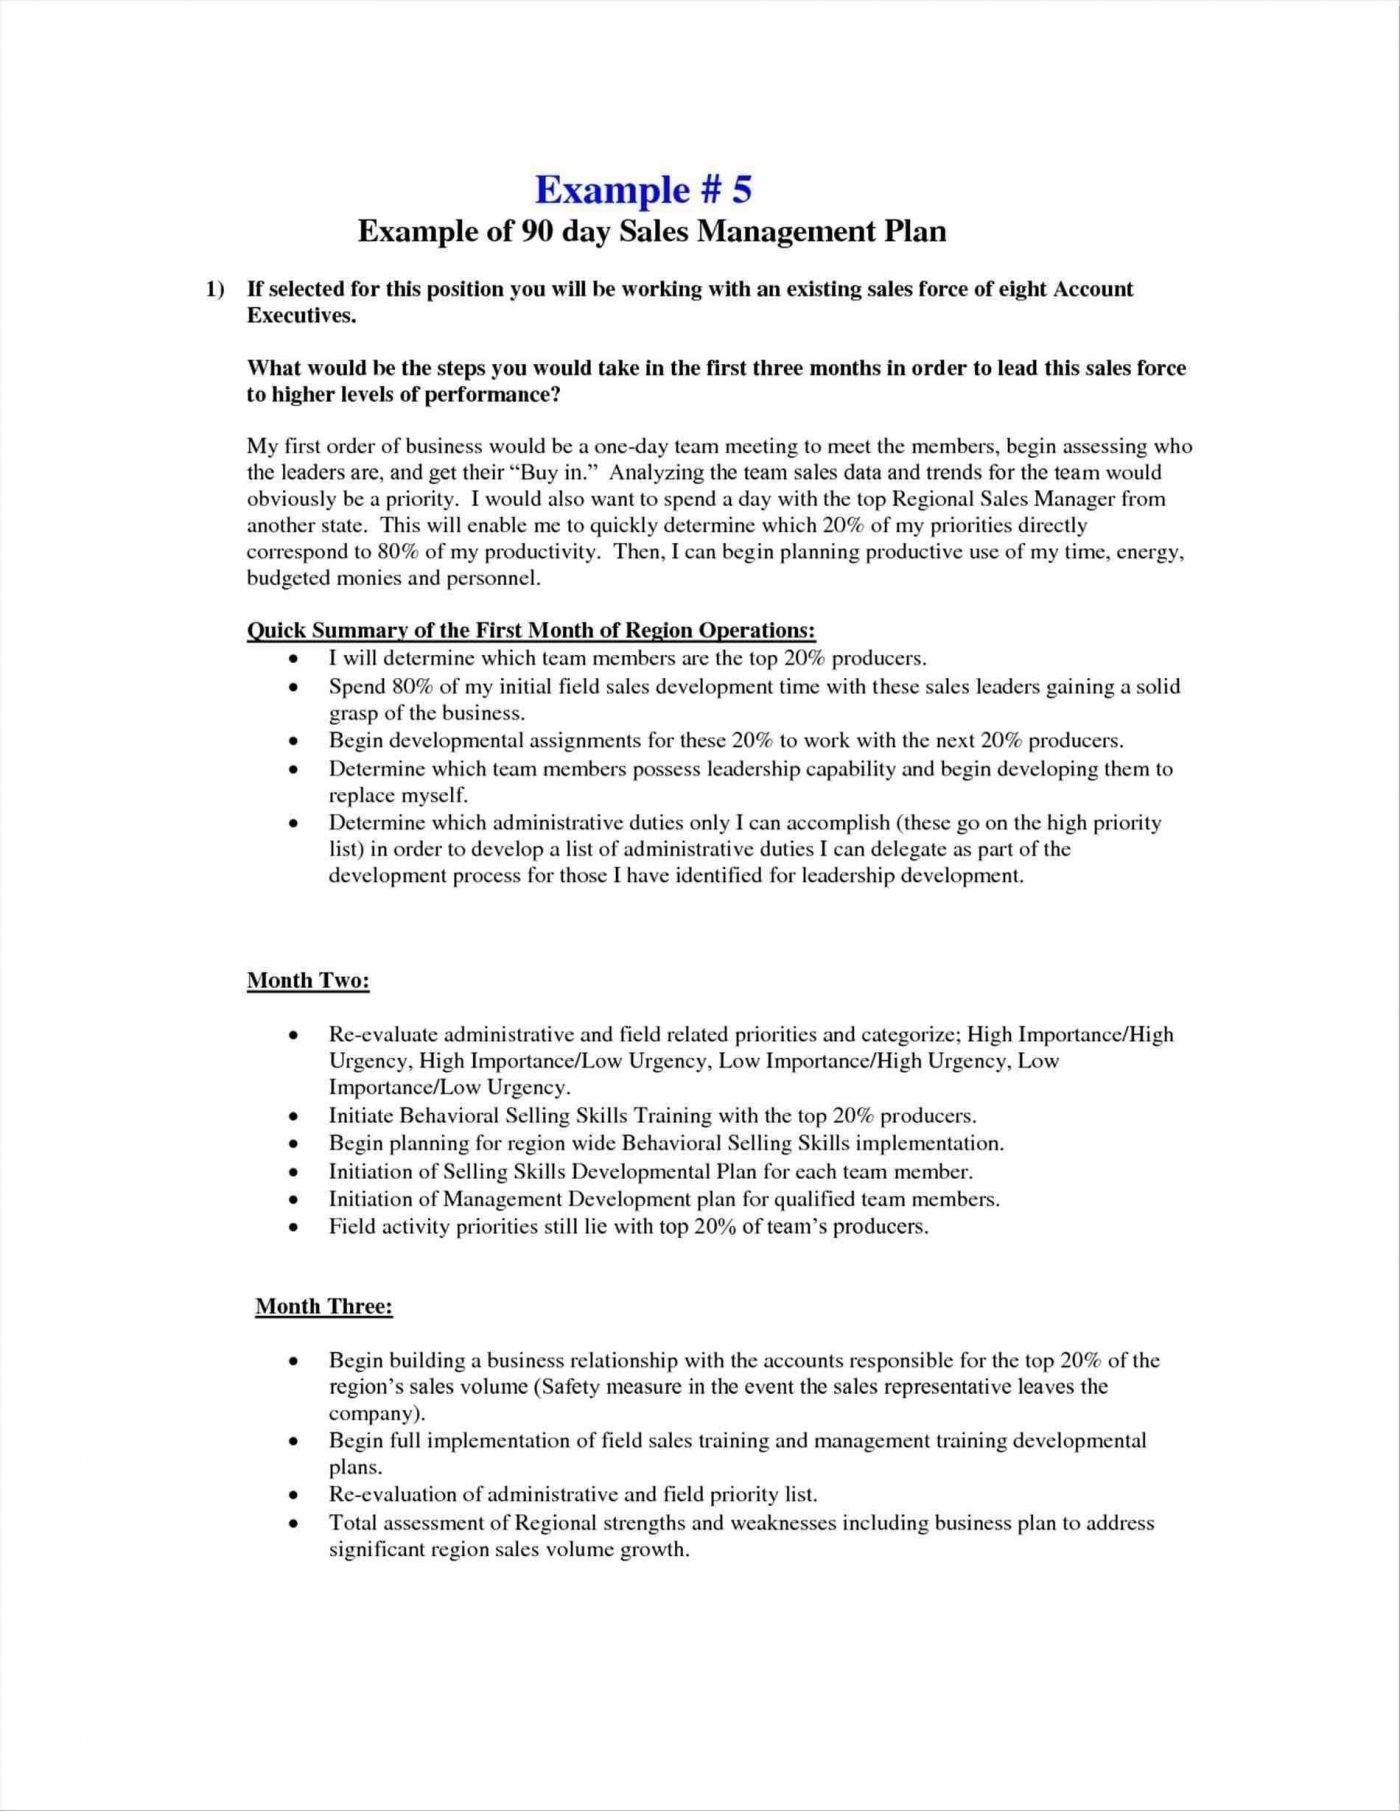 Valid Business Plan Template For Sales Rep With Images